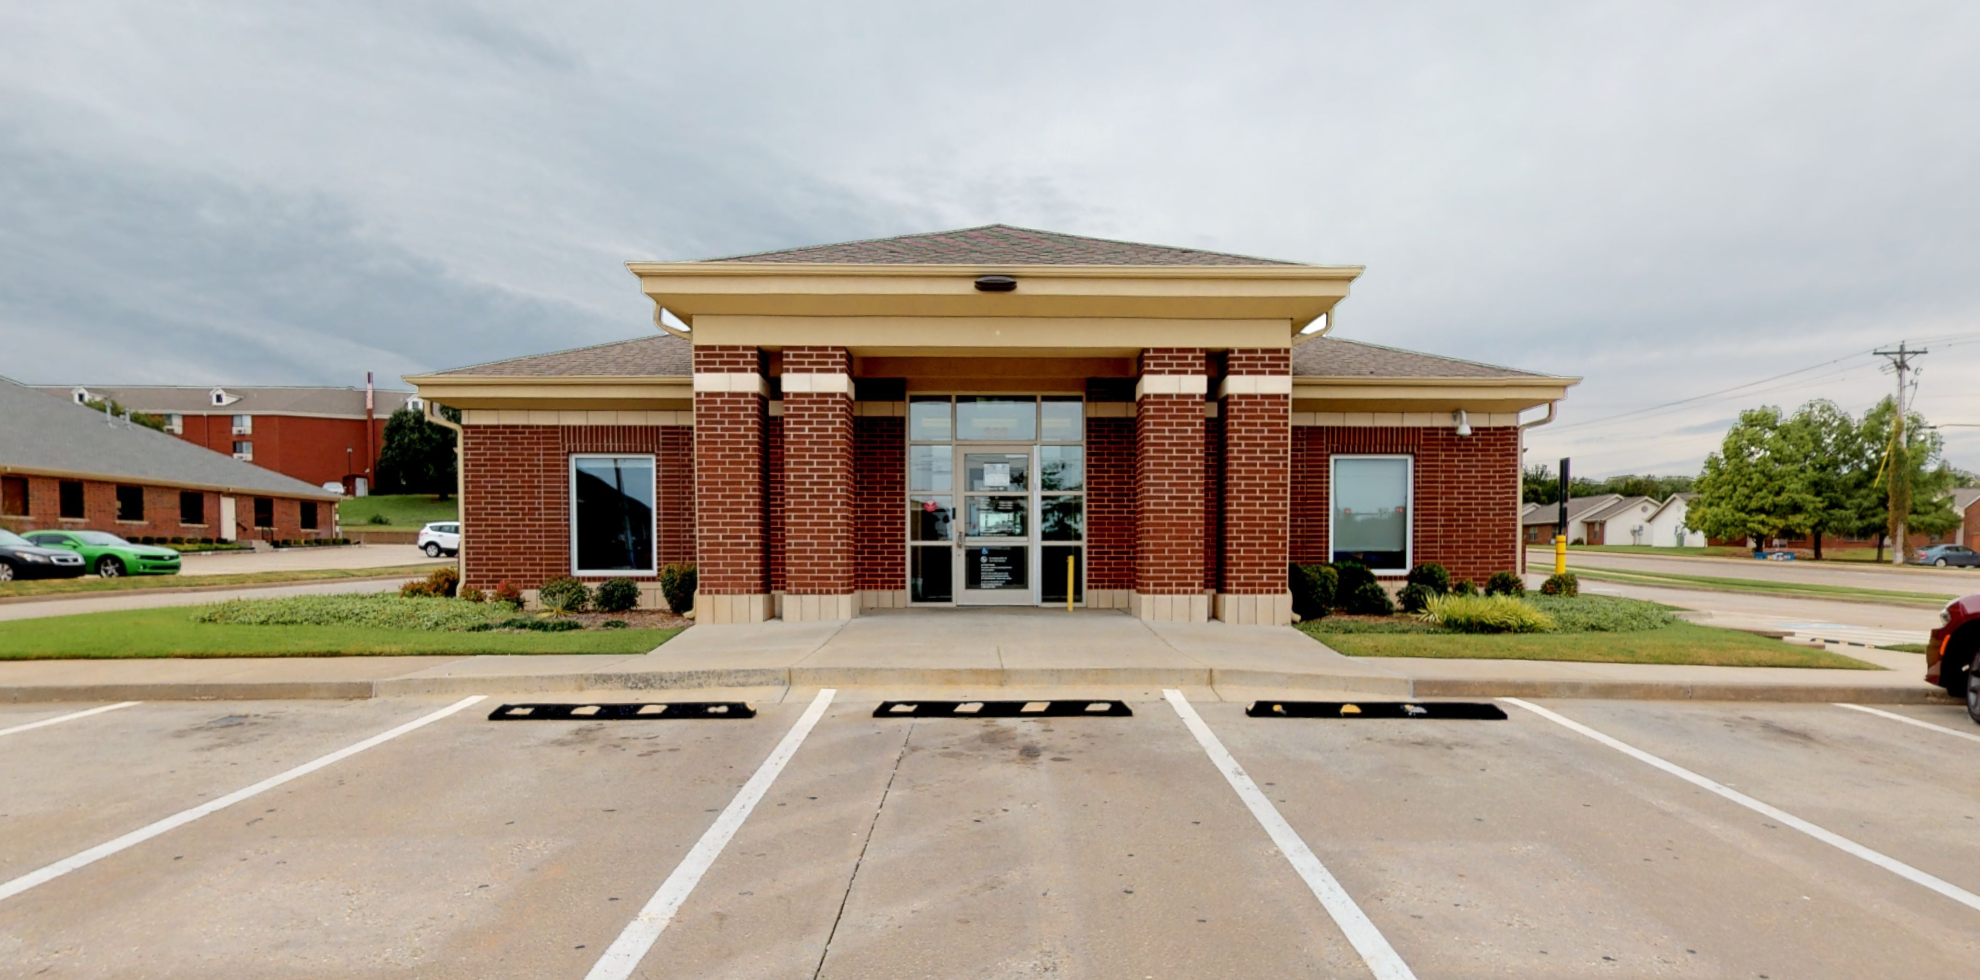 Bank of America financial center with drive-thru ATM   333 N Bryant Ave, Edmond, OK 73034